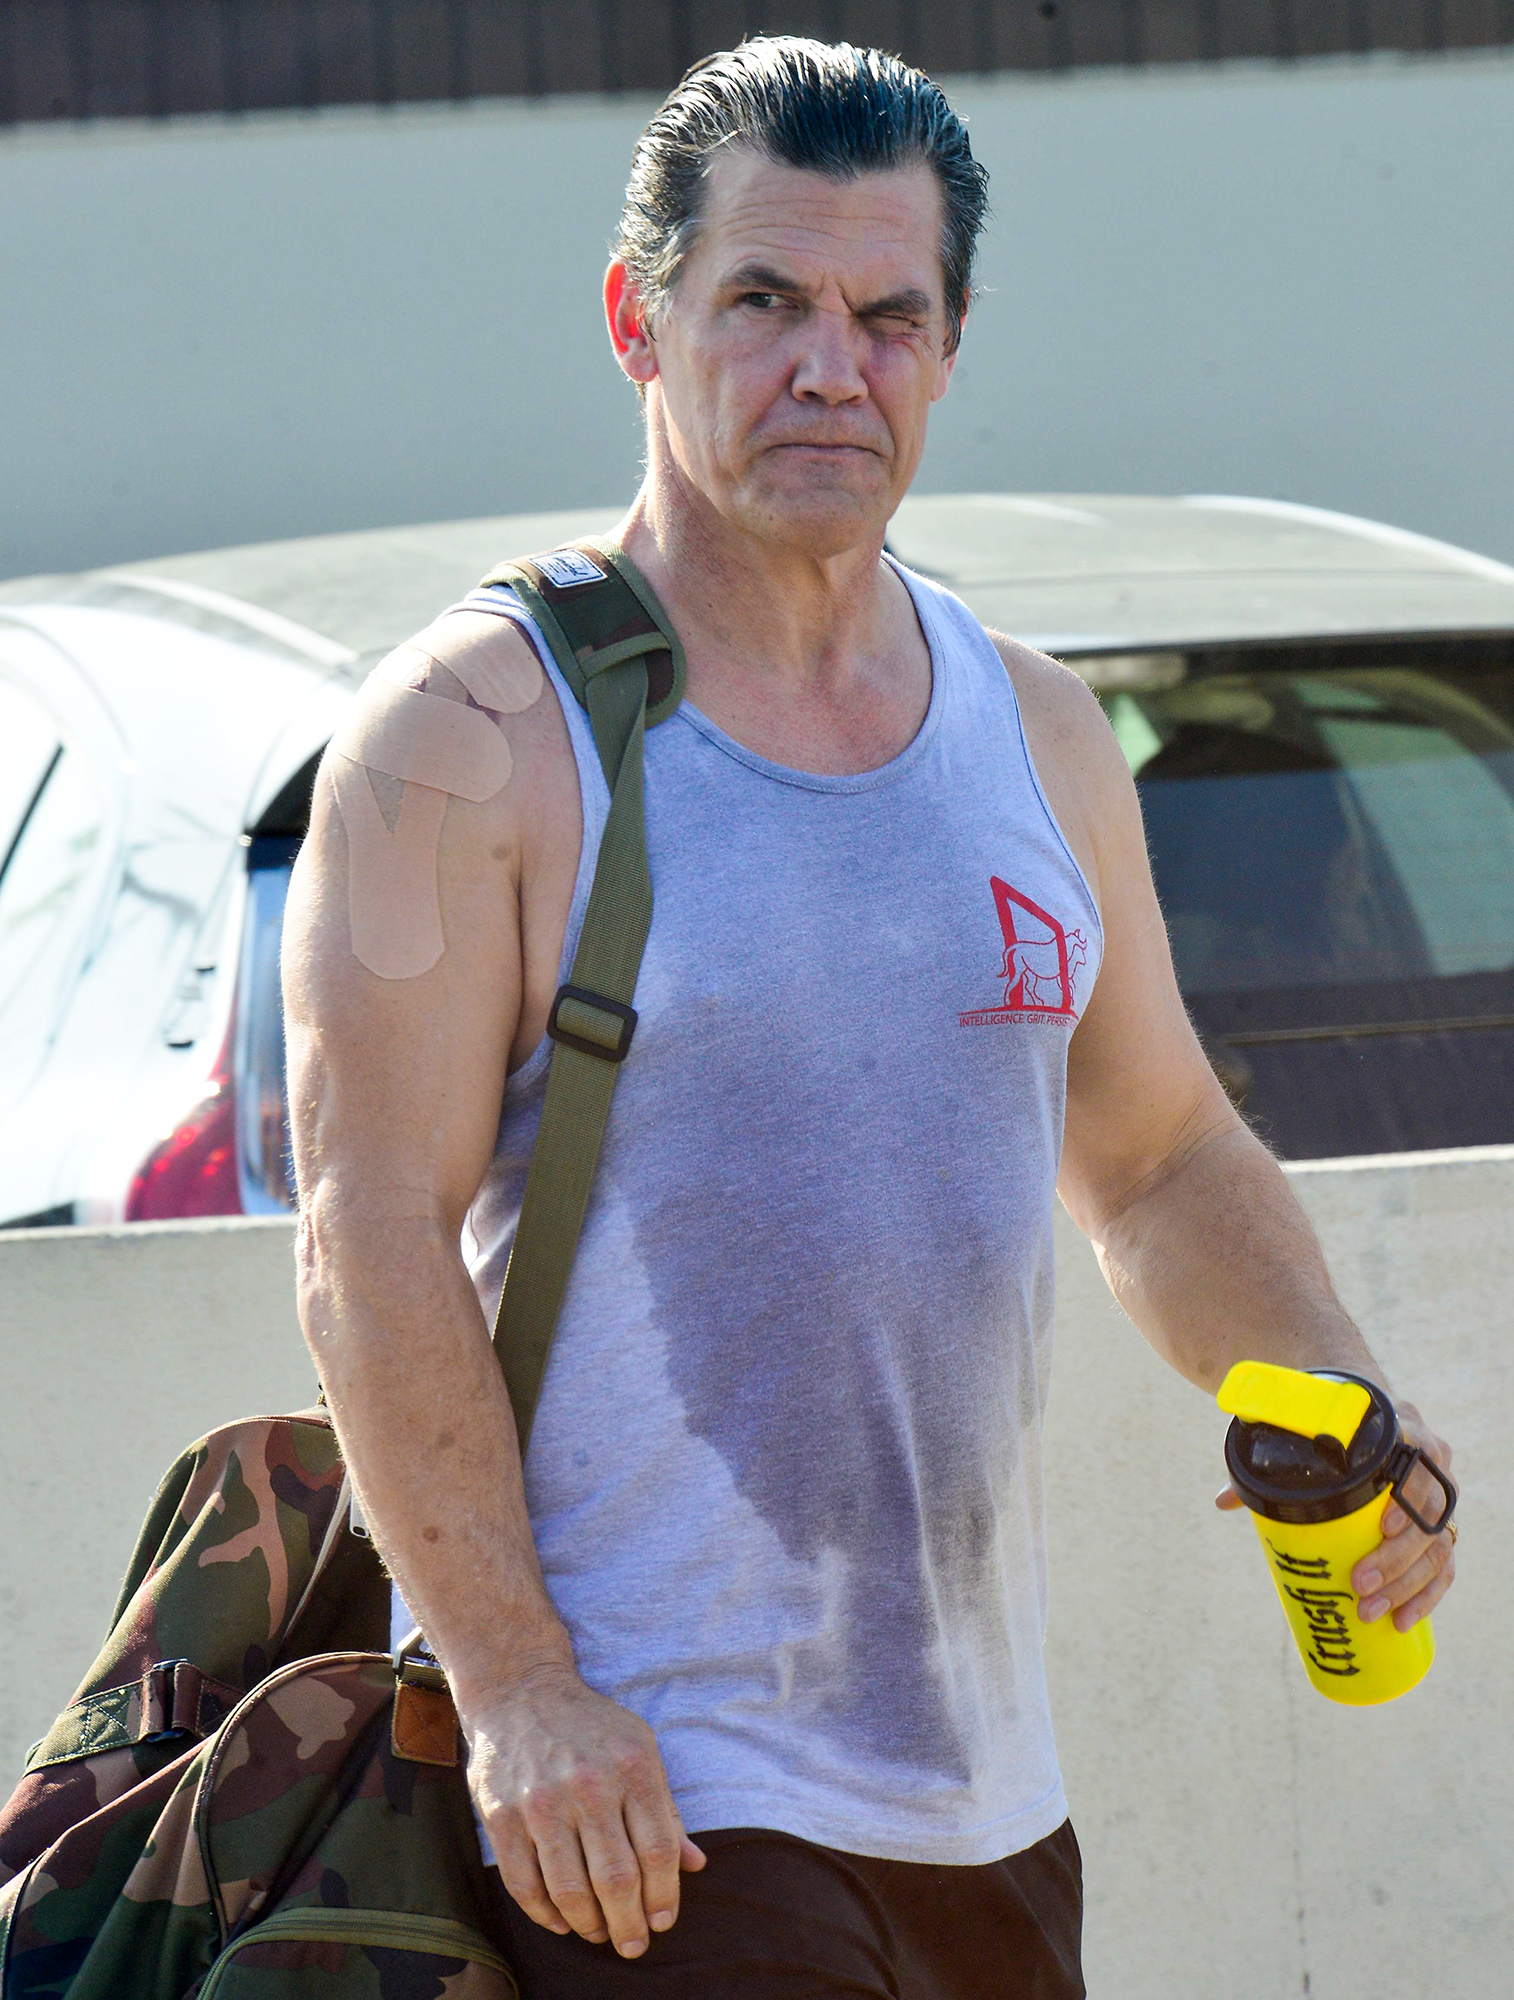 EXCLUSIVE: Josh Brolin looking as if he has had quite the workout and an injured shoulder as he leaves Golds Gym in Venice, Ca